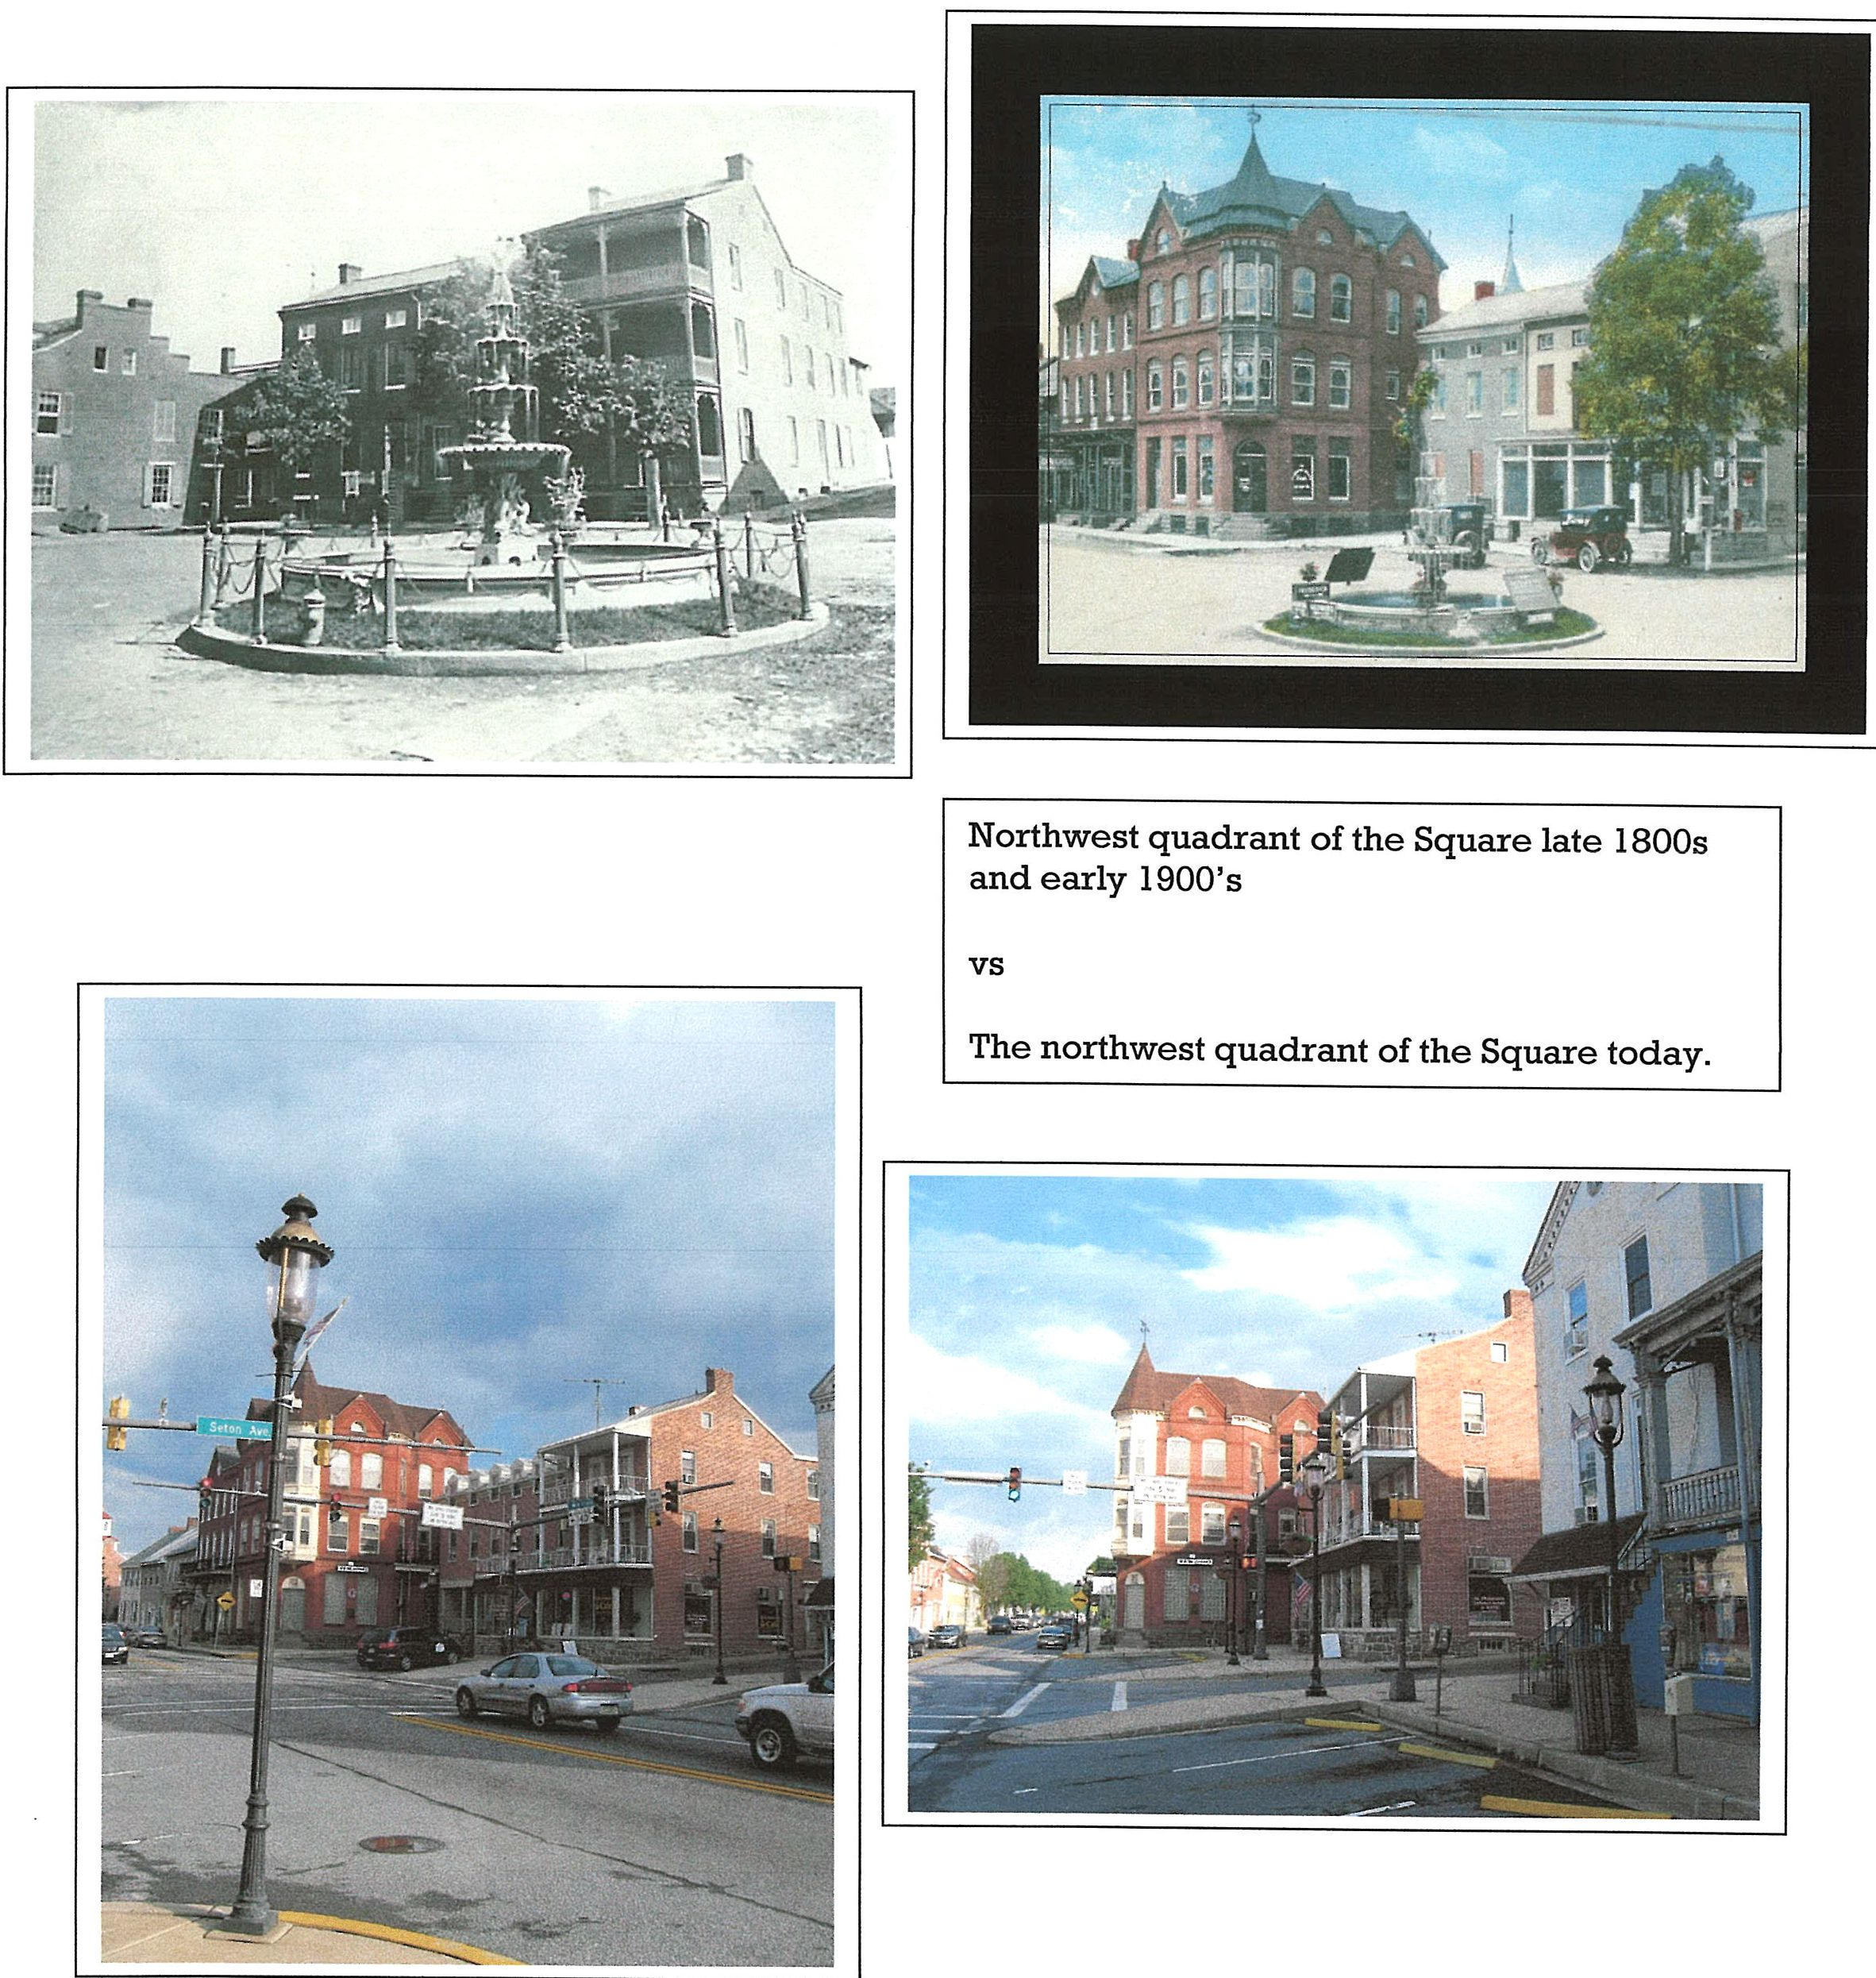 Town Square 1800 - 1900